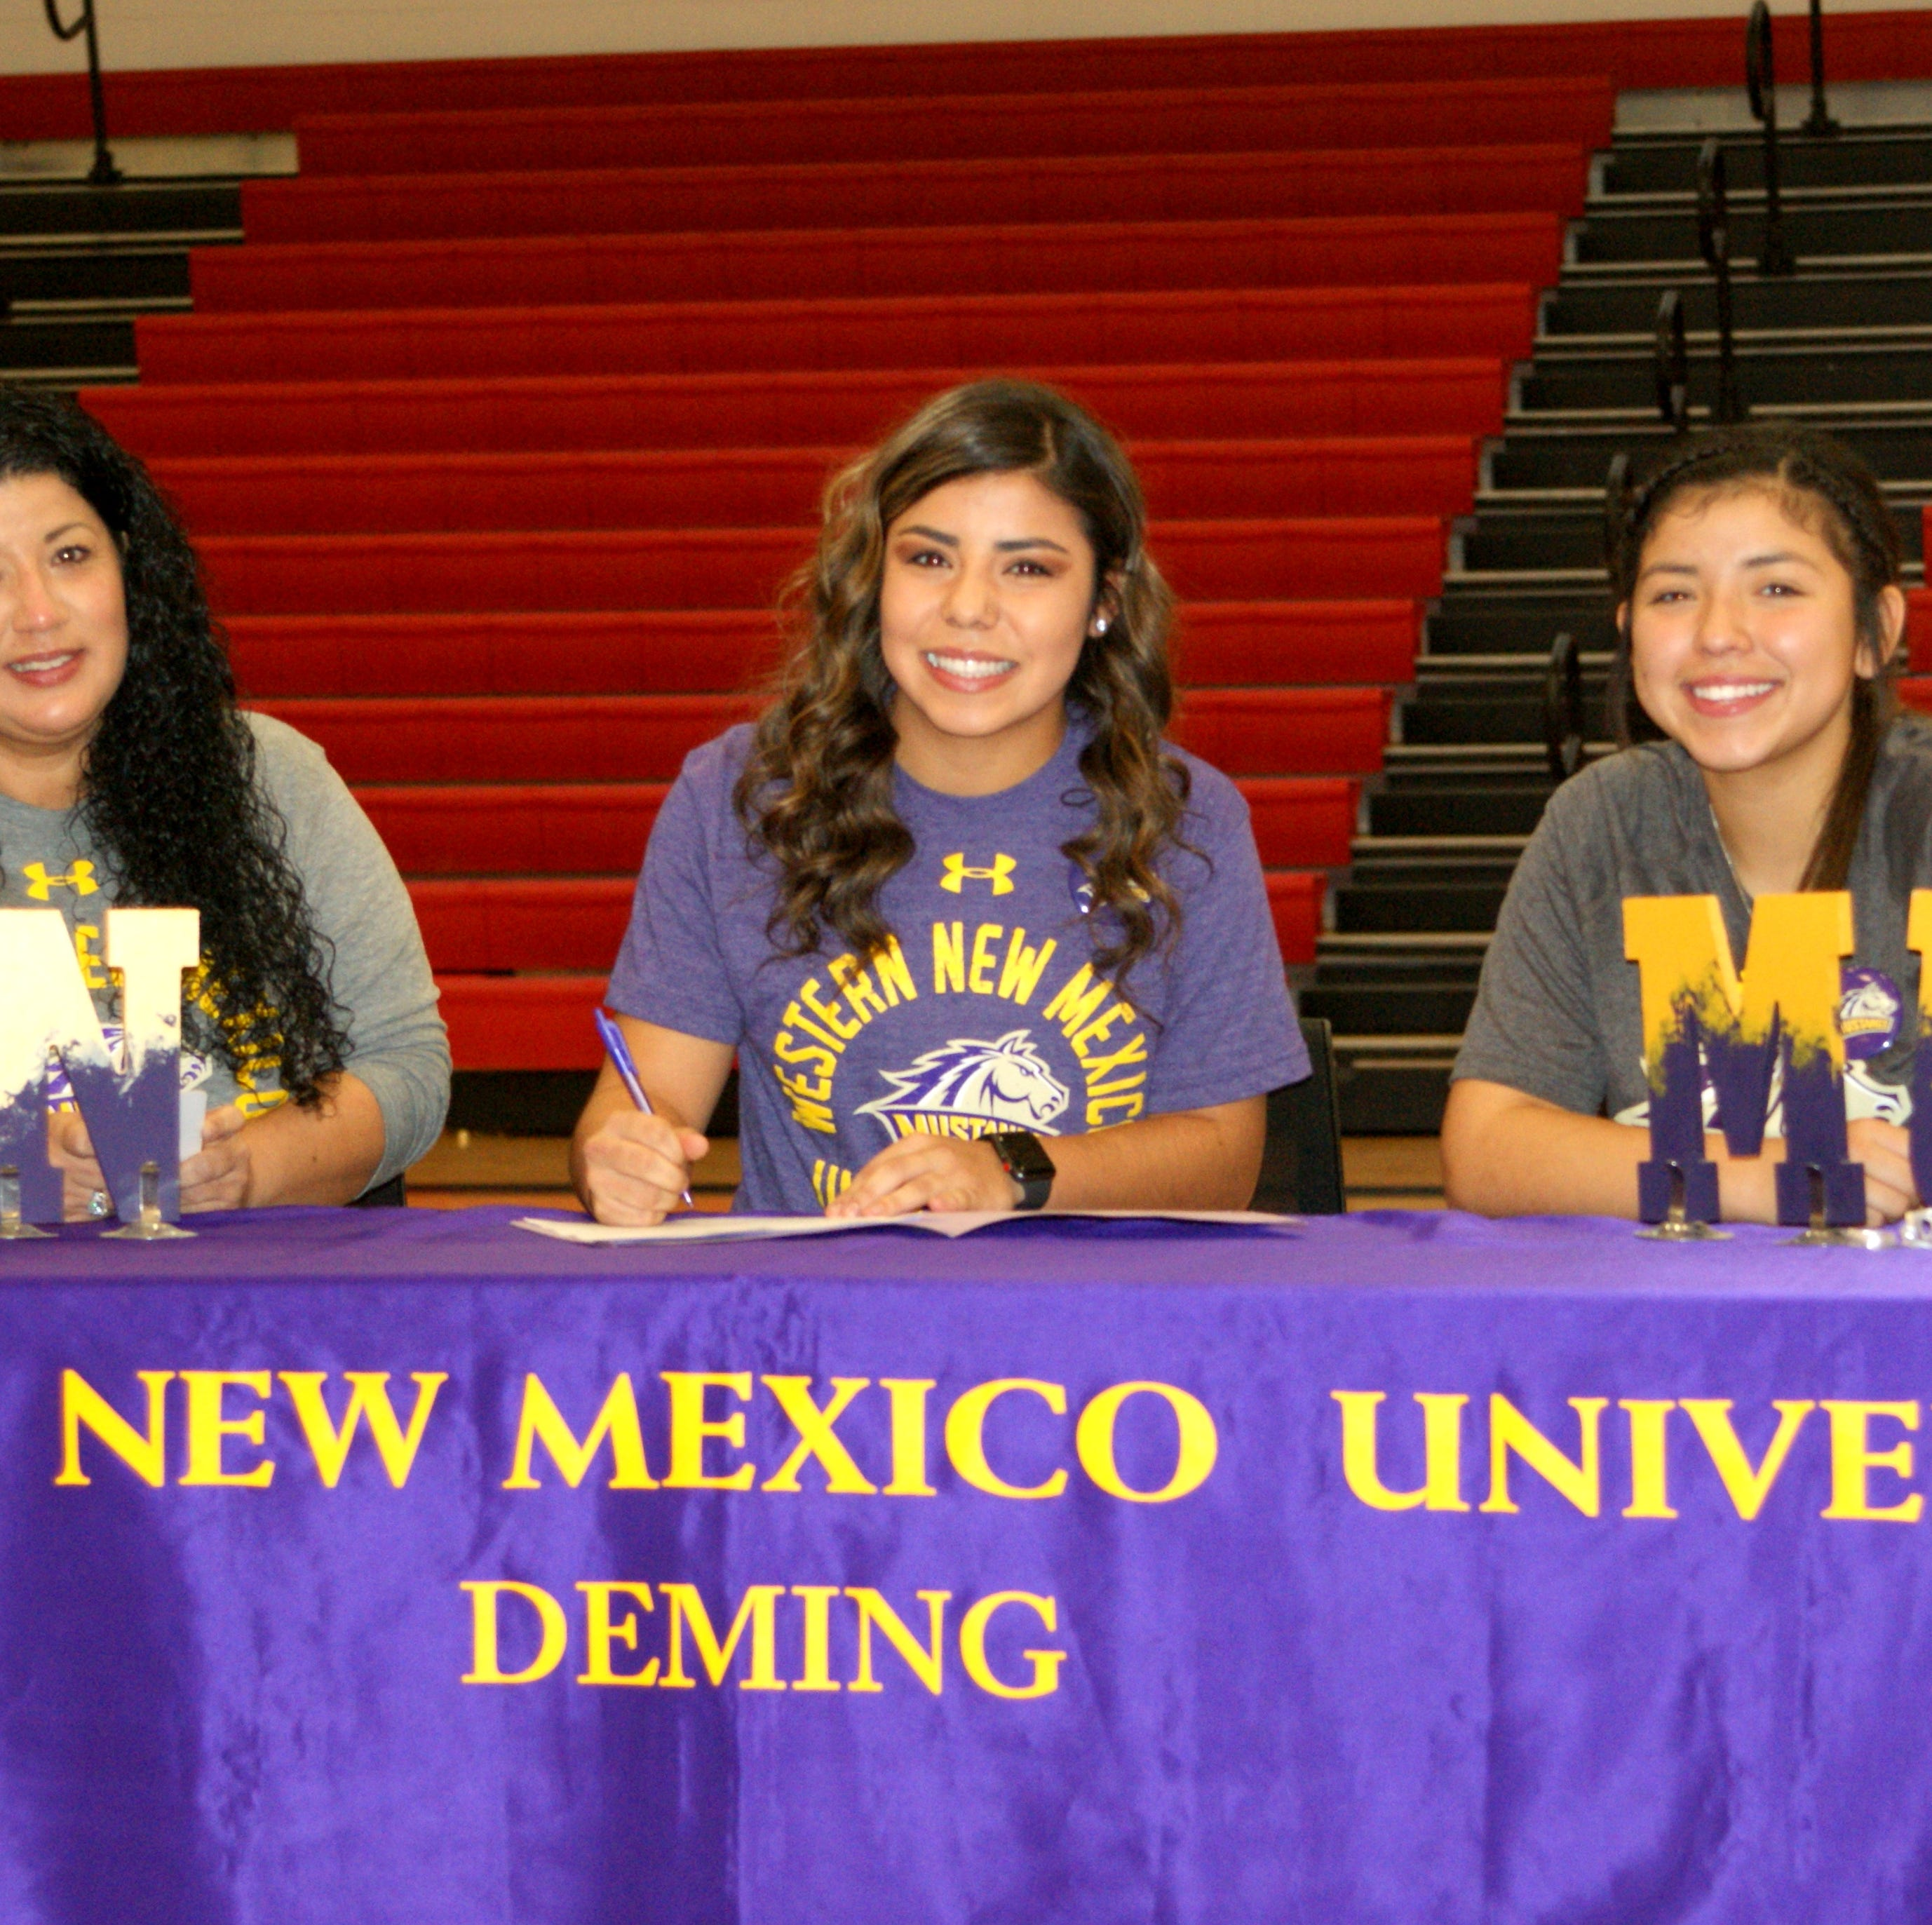 Mireya Trujillo commits to WNMU for a chance to play softball with the Mustangs